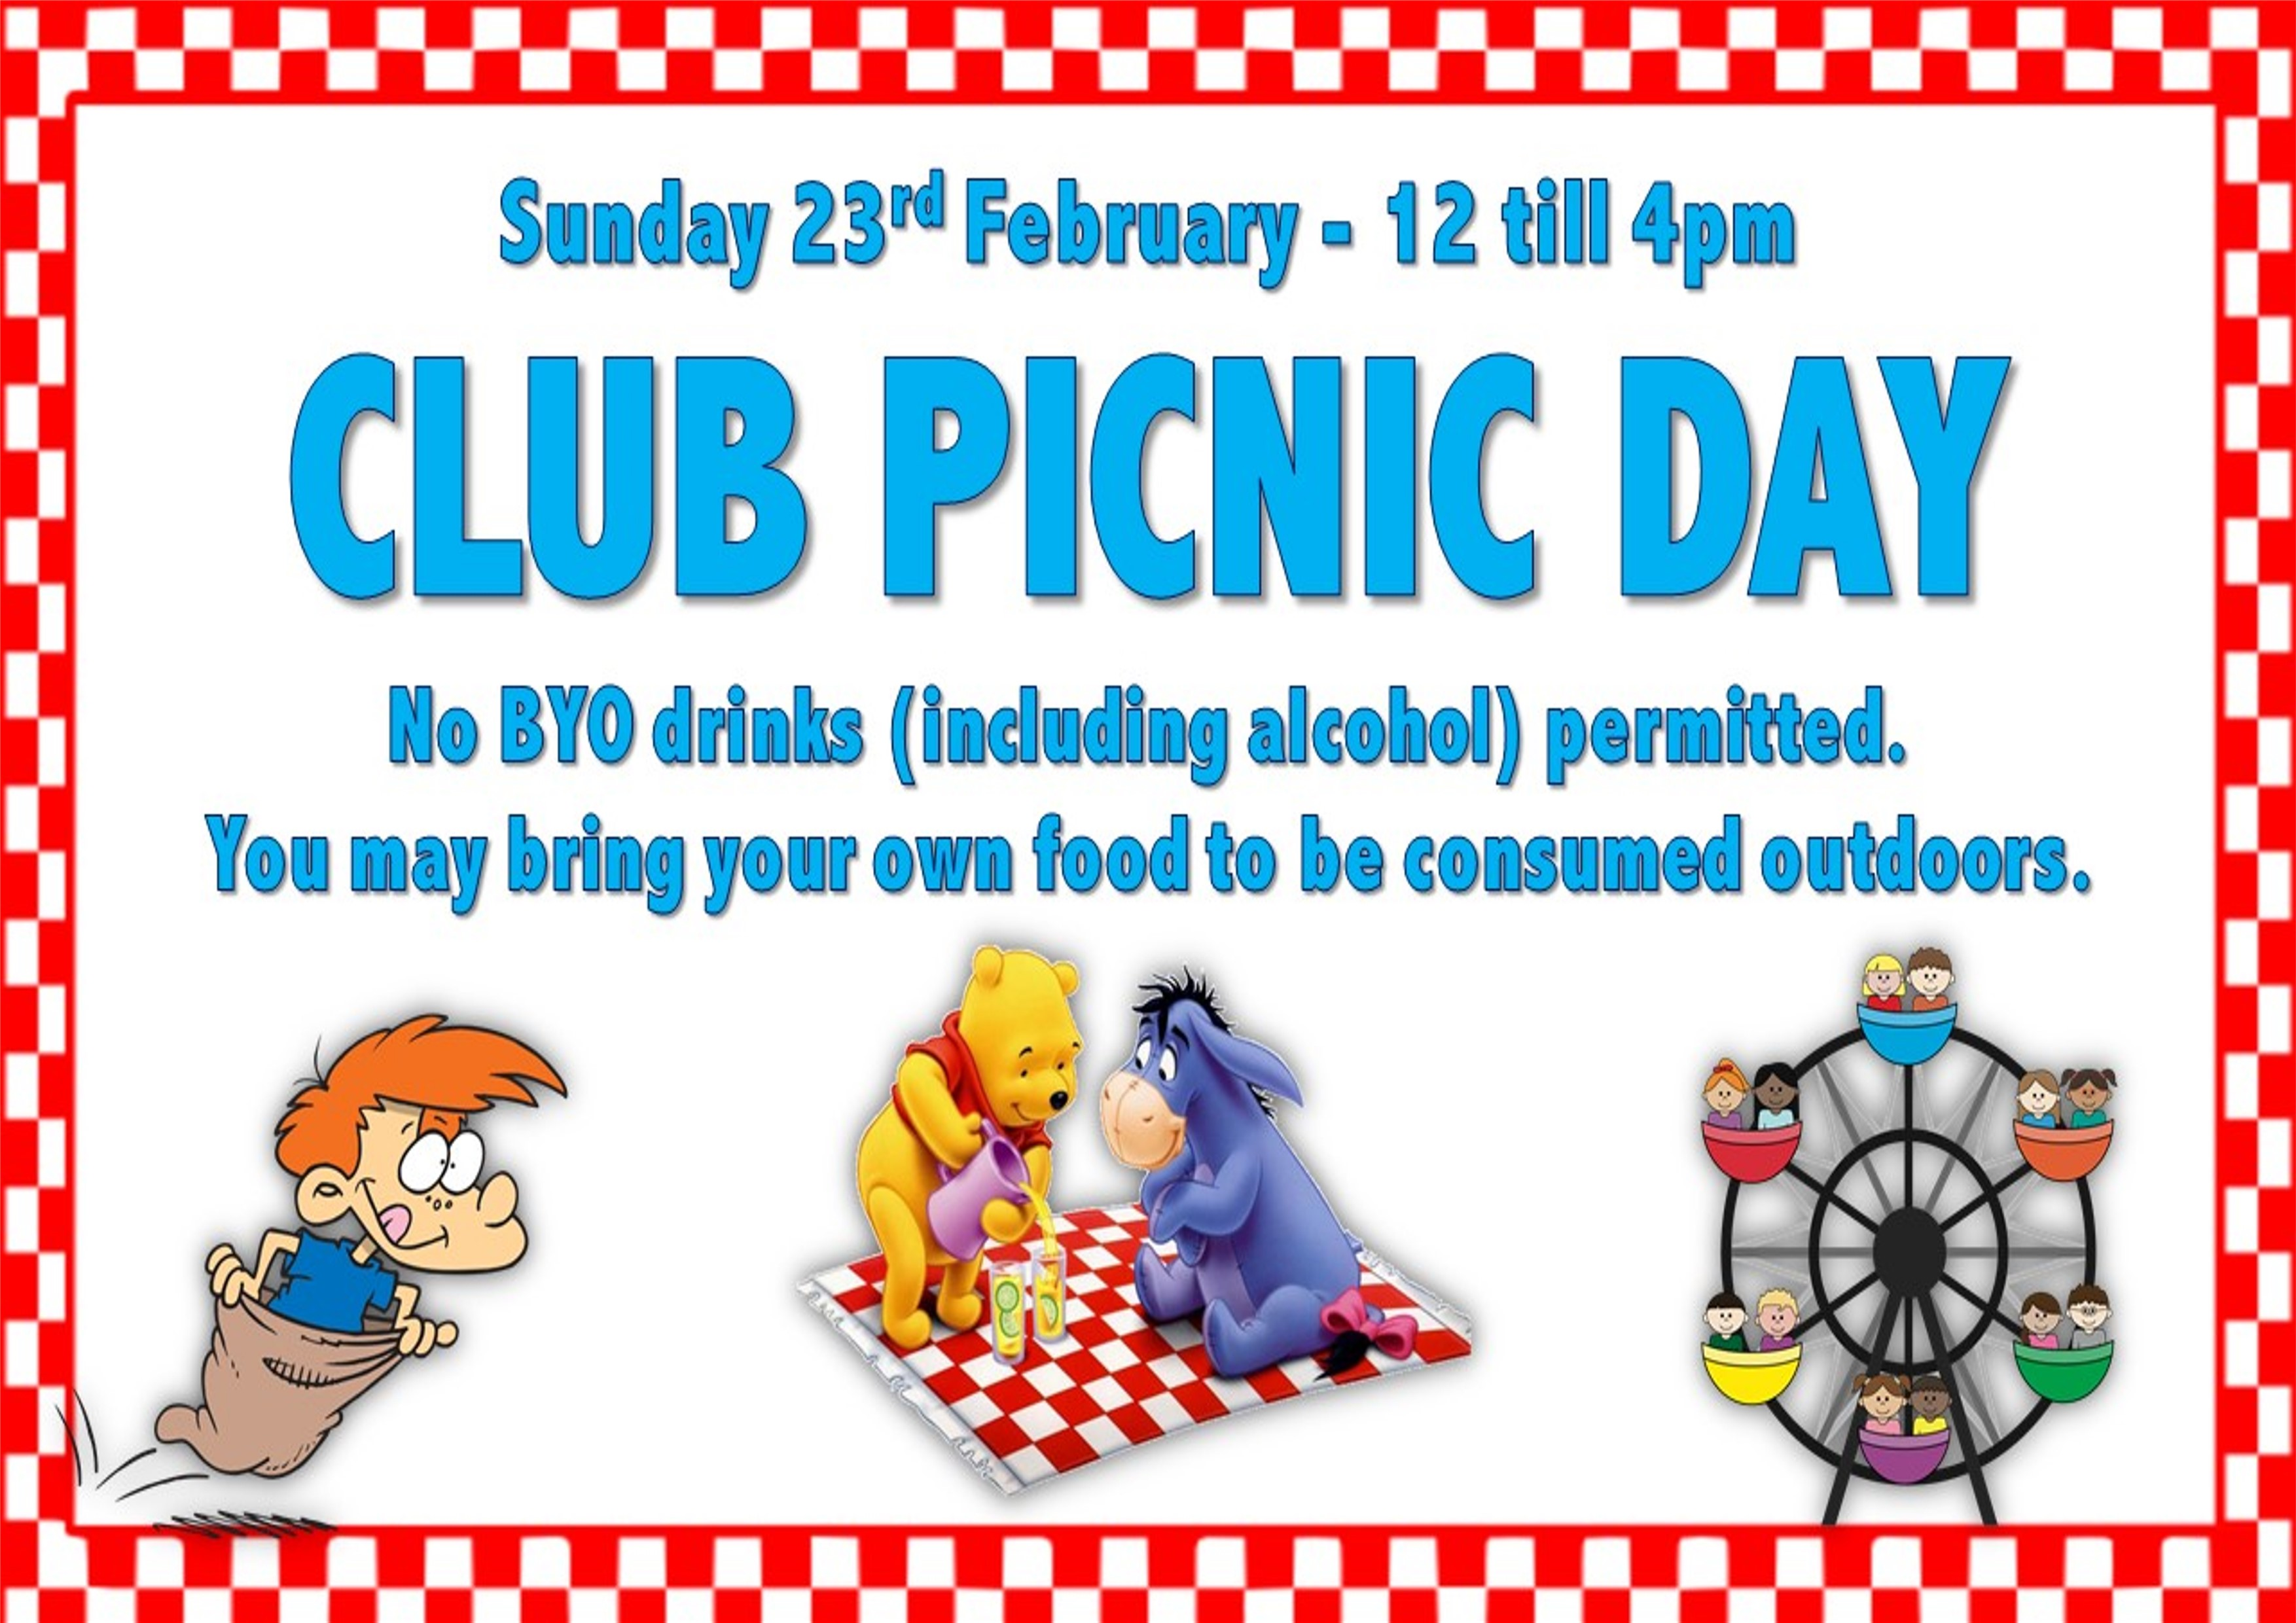 CLUB PICNIC DAY